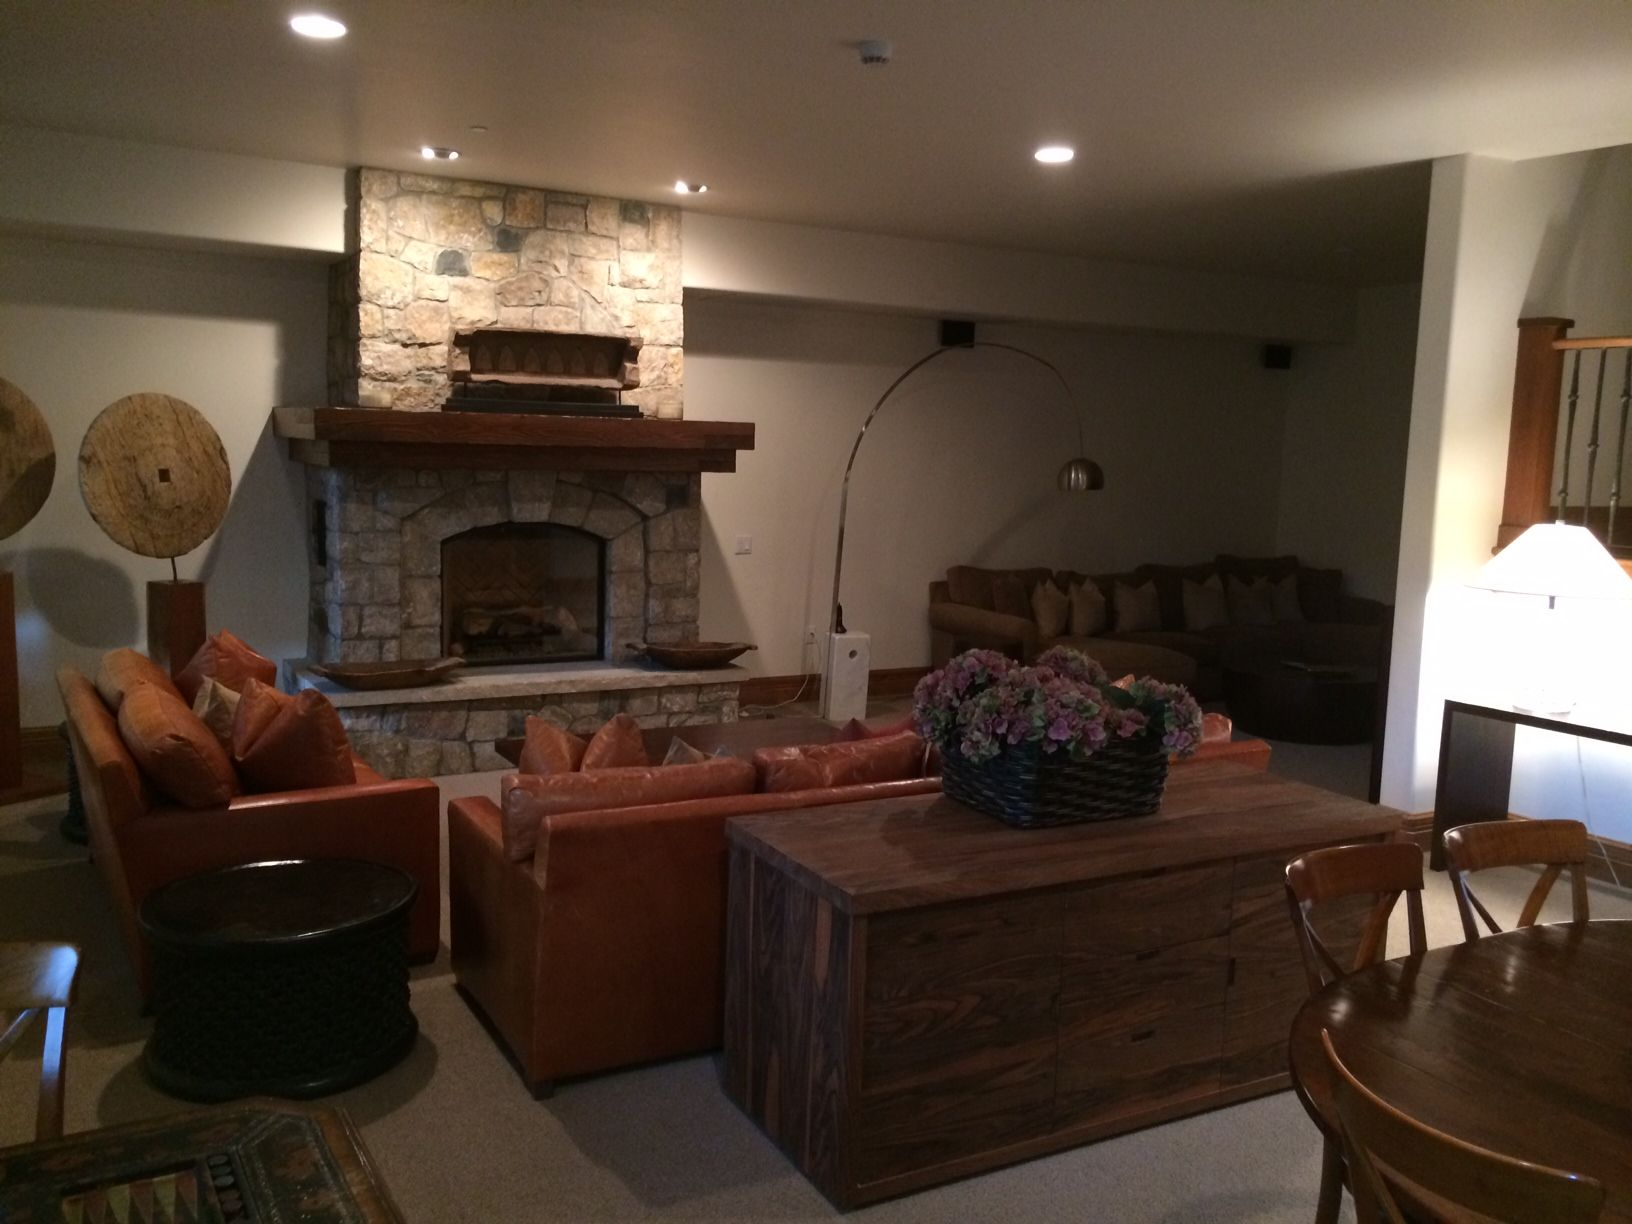 Lower level fireplace, hot tub, living space and bedrooms